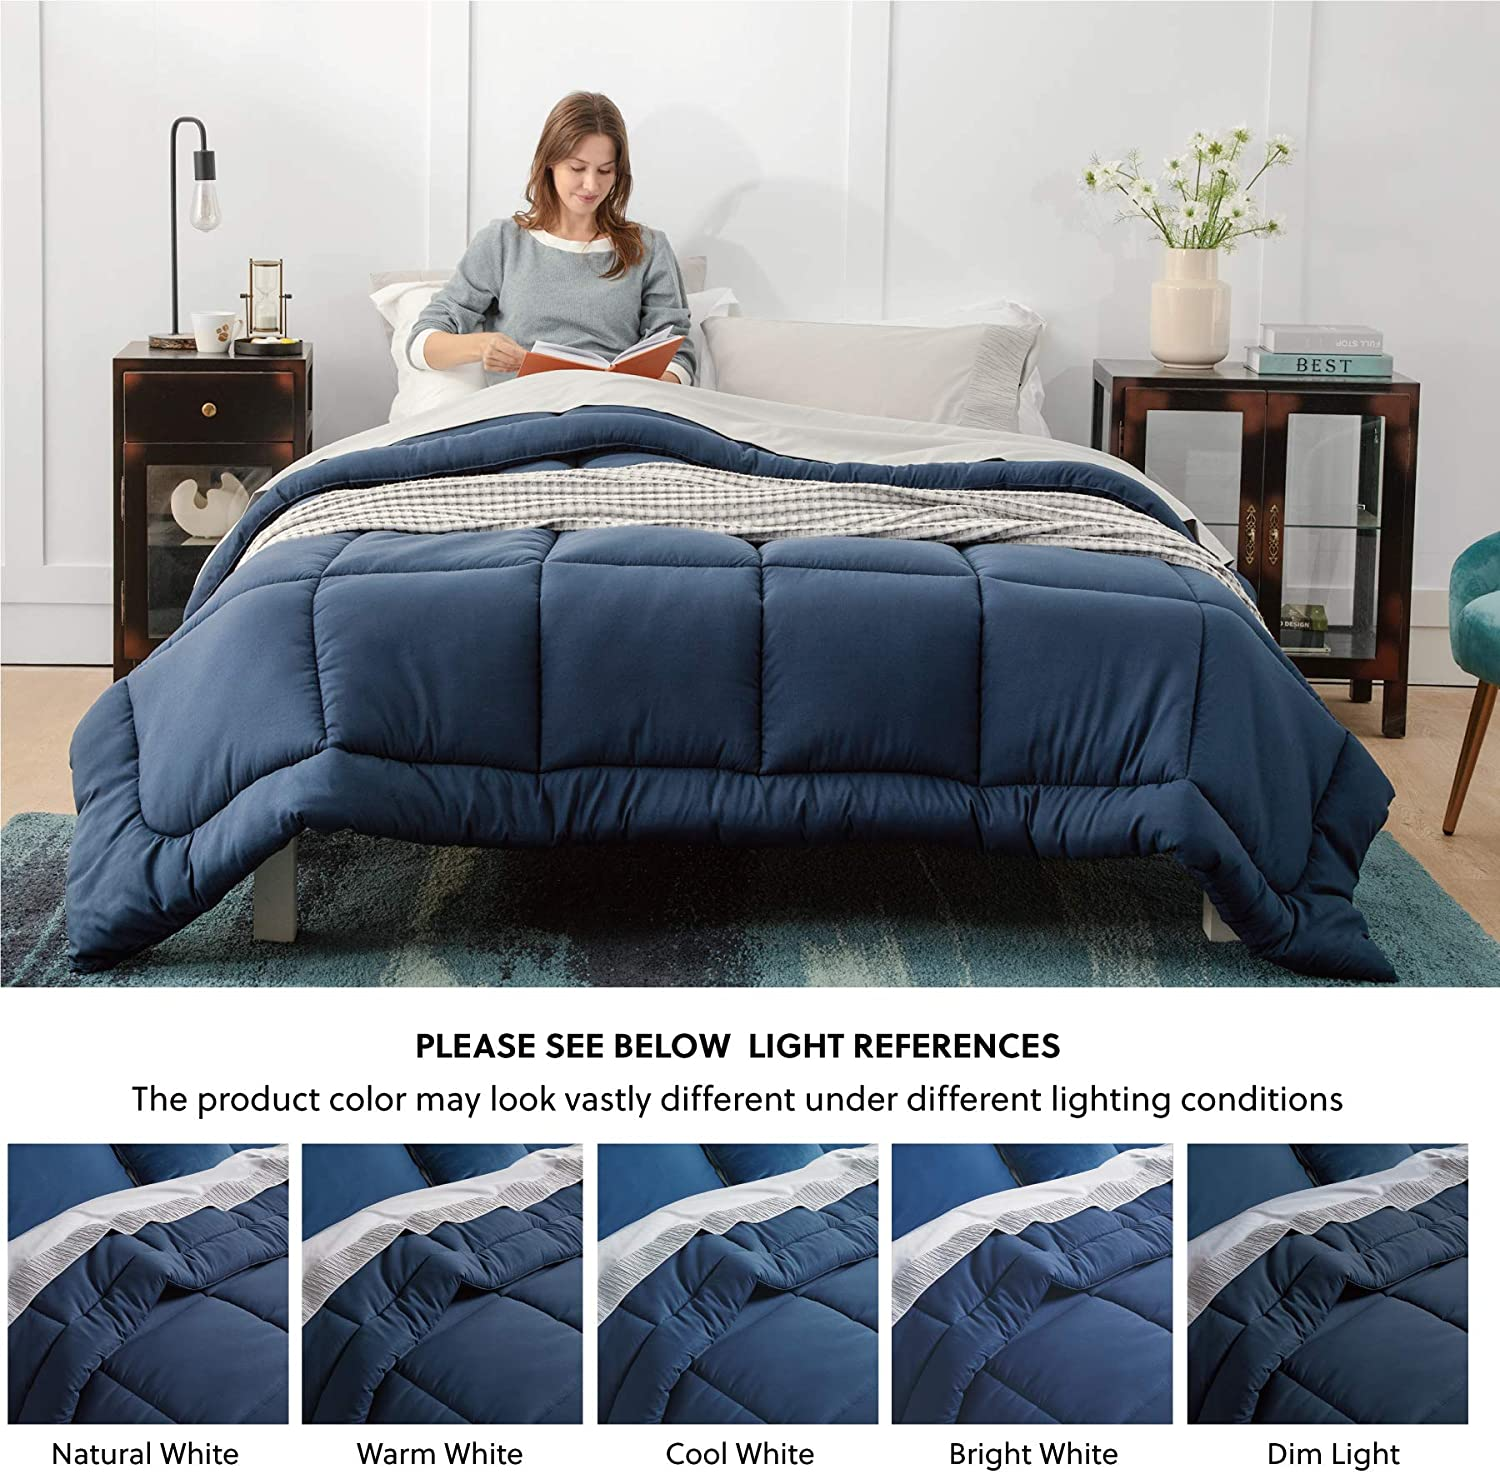 Bedsure Navy Blue Comforter King Size Duvet Insert Quilted Bedding Comforters for King Bed with Corner Tabs